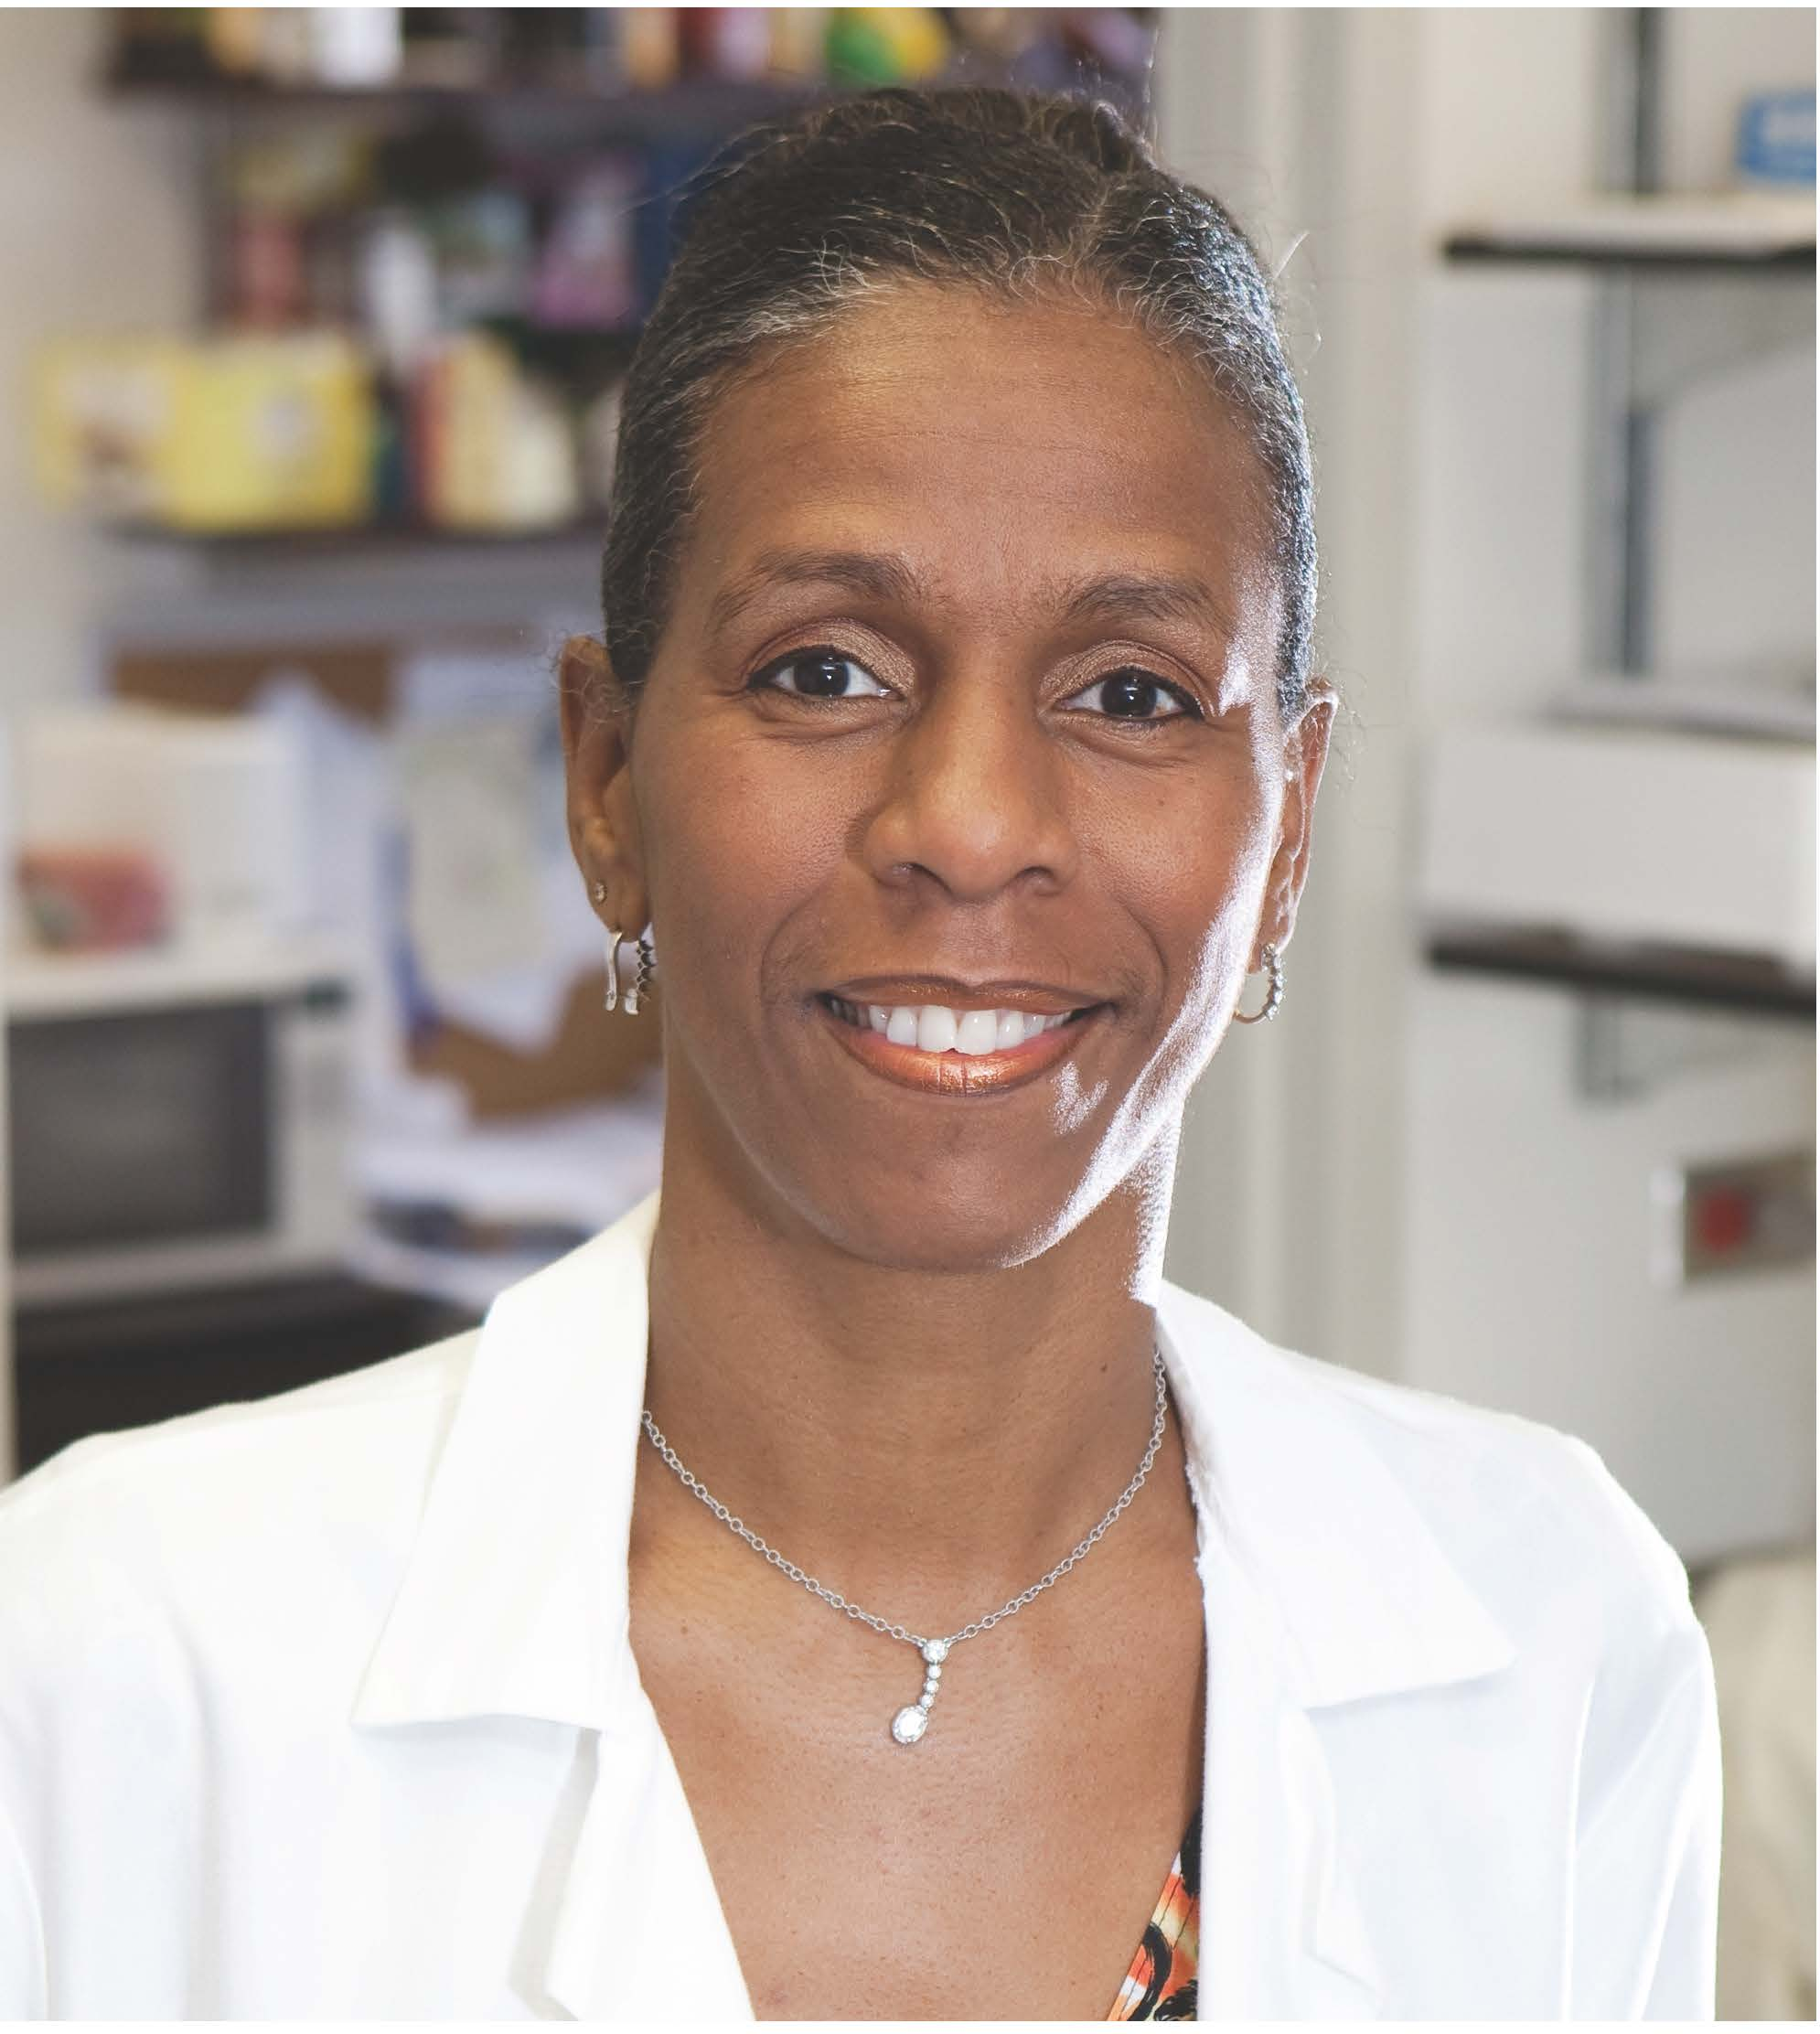 Genevieve Neal-Perry, MD, PhD